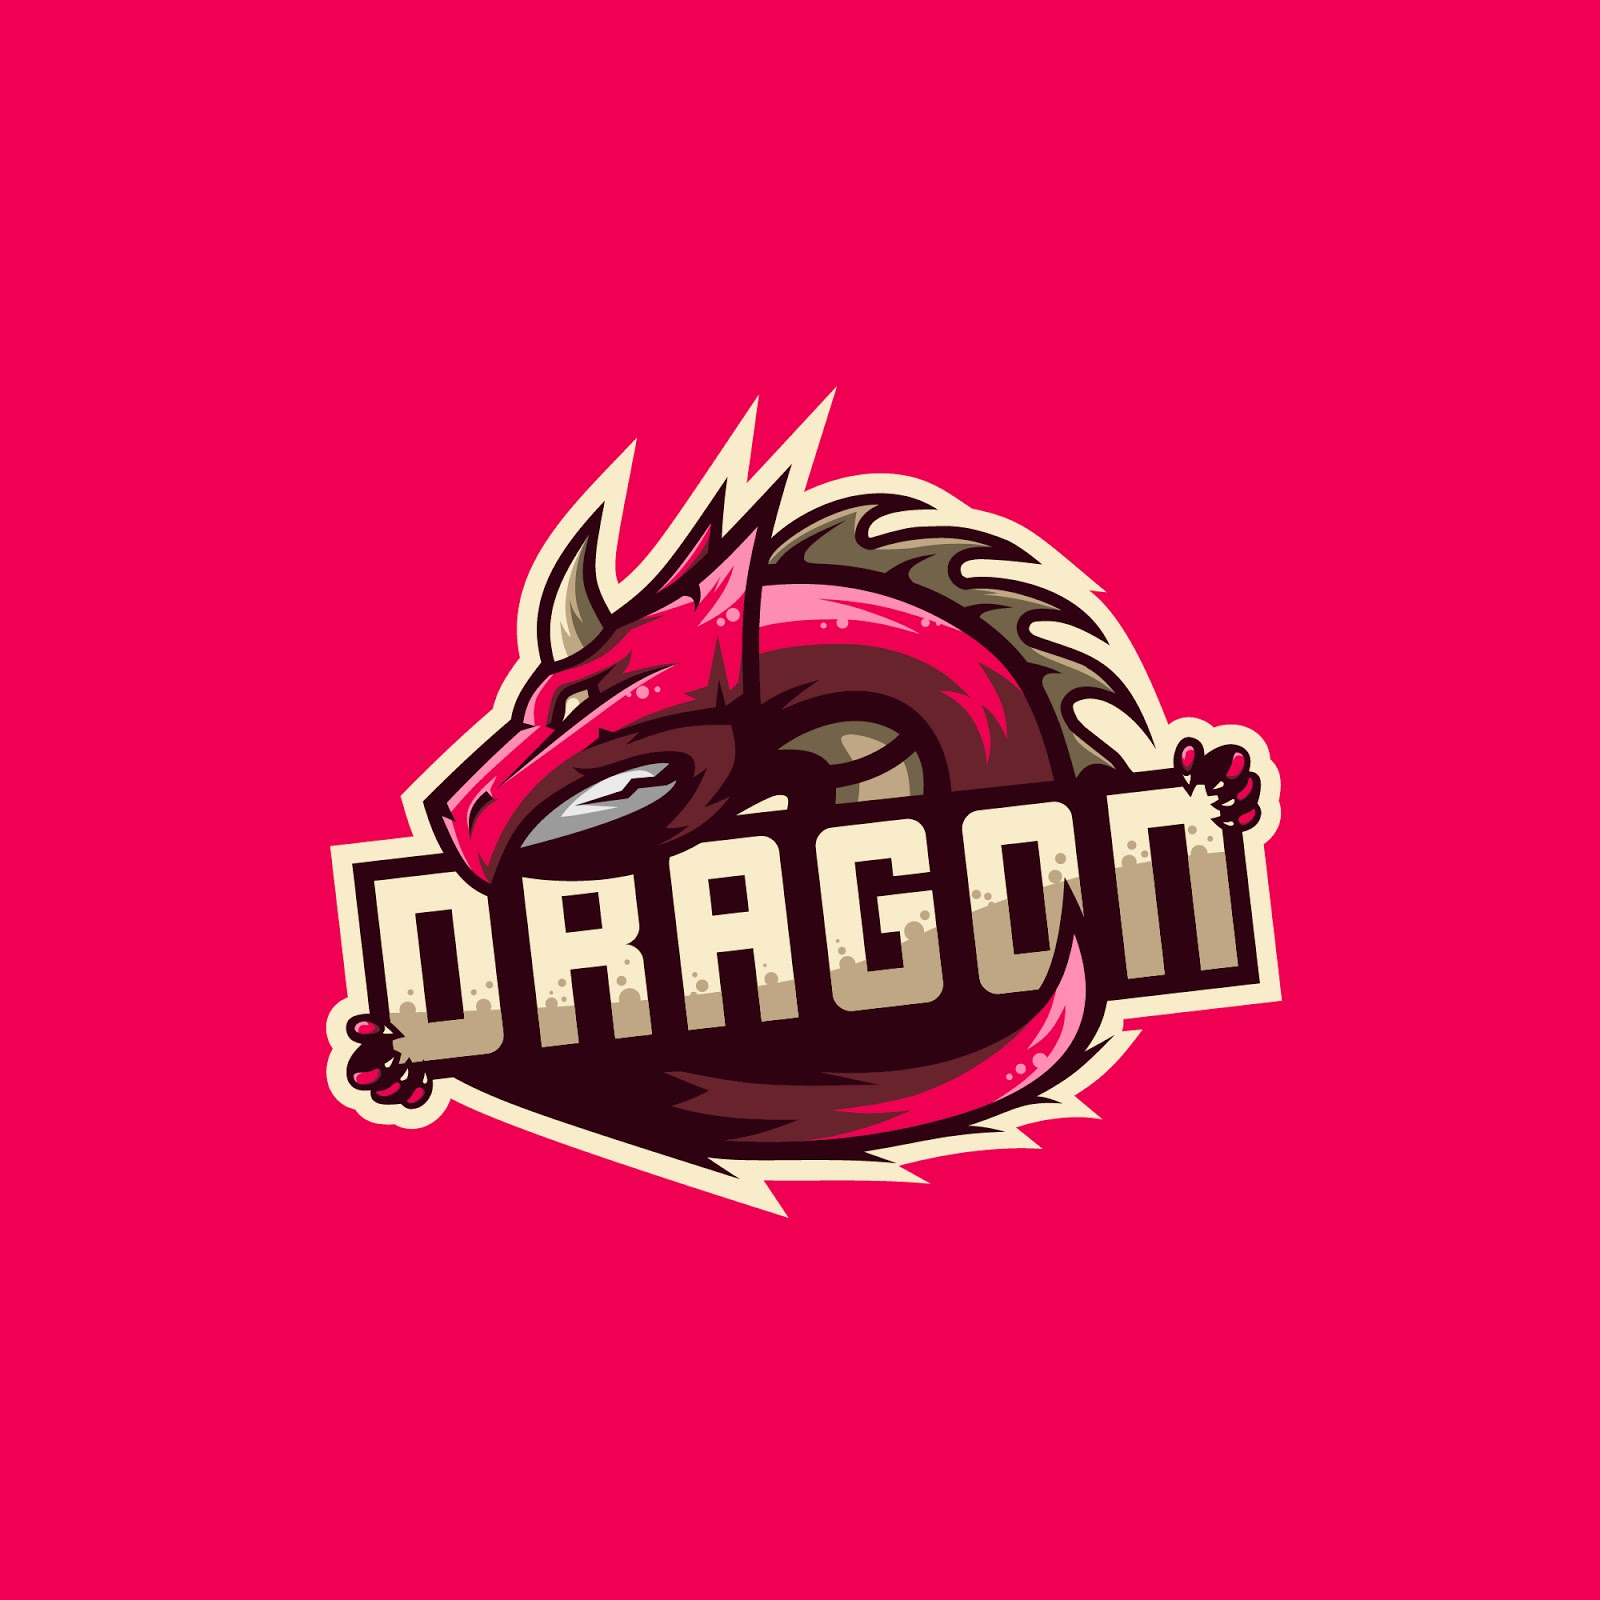 Awesome Dragon Logo Illustration Free Download Vector CDR, AI, EPS and PNG Formats